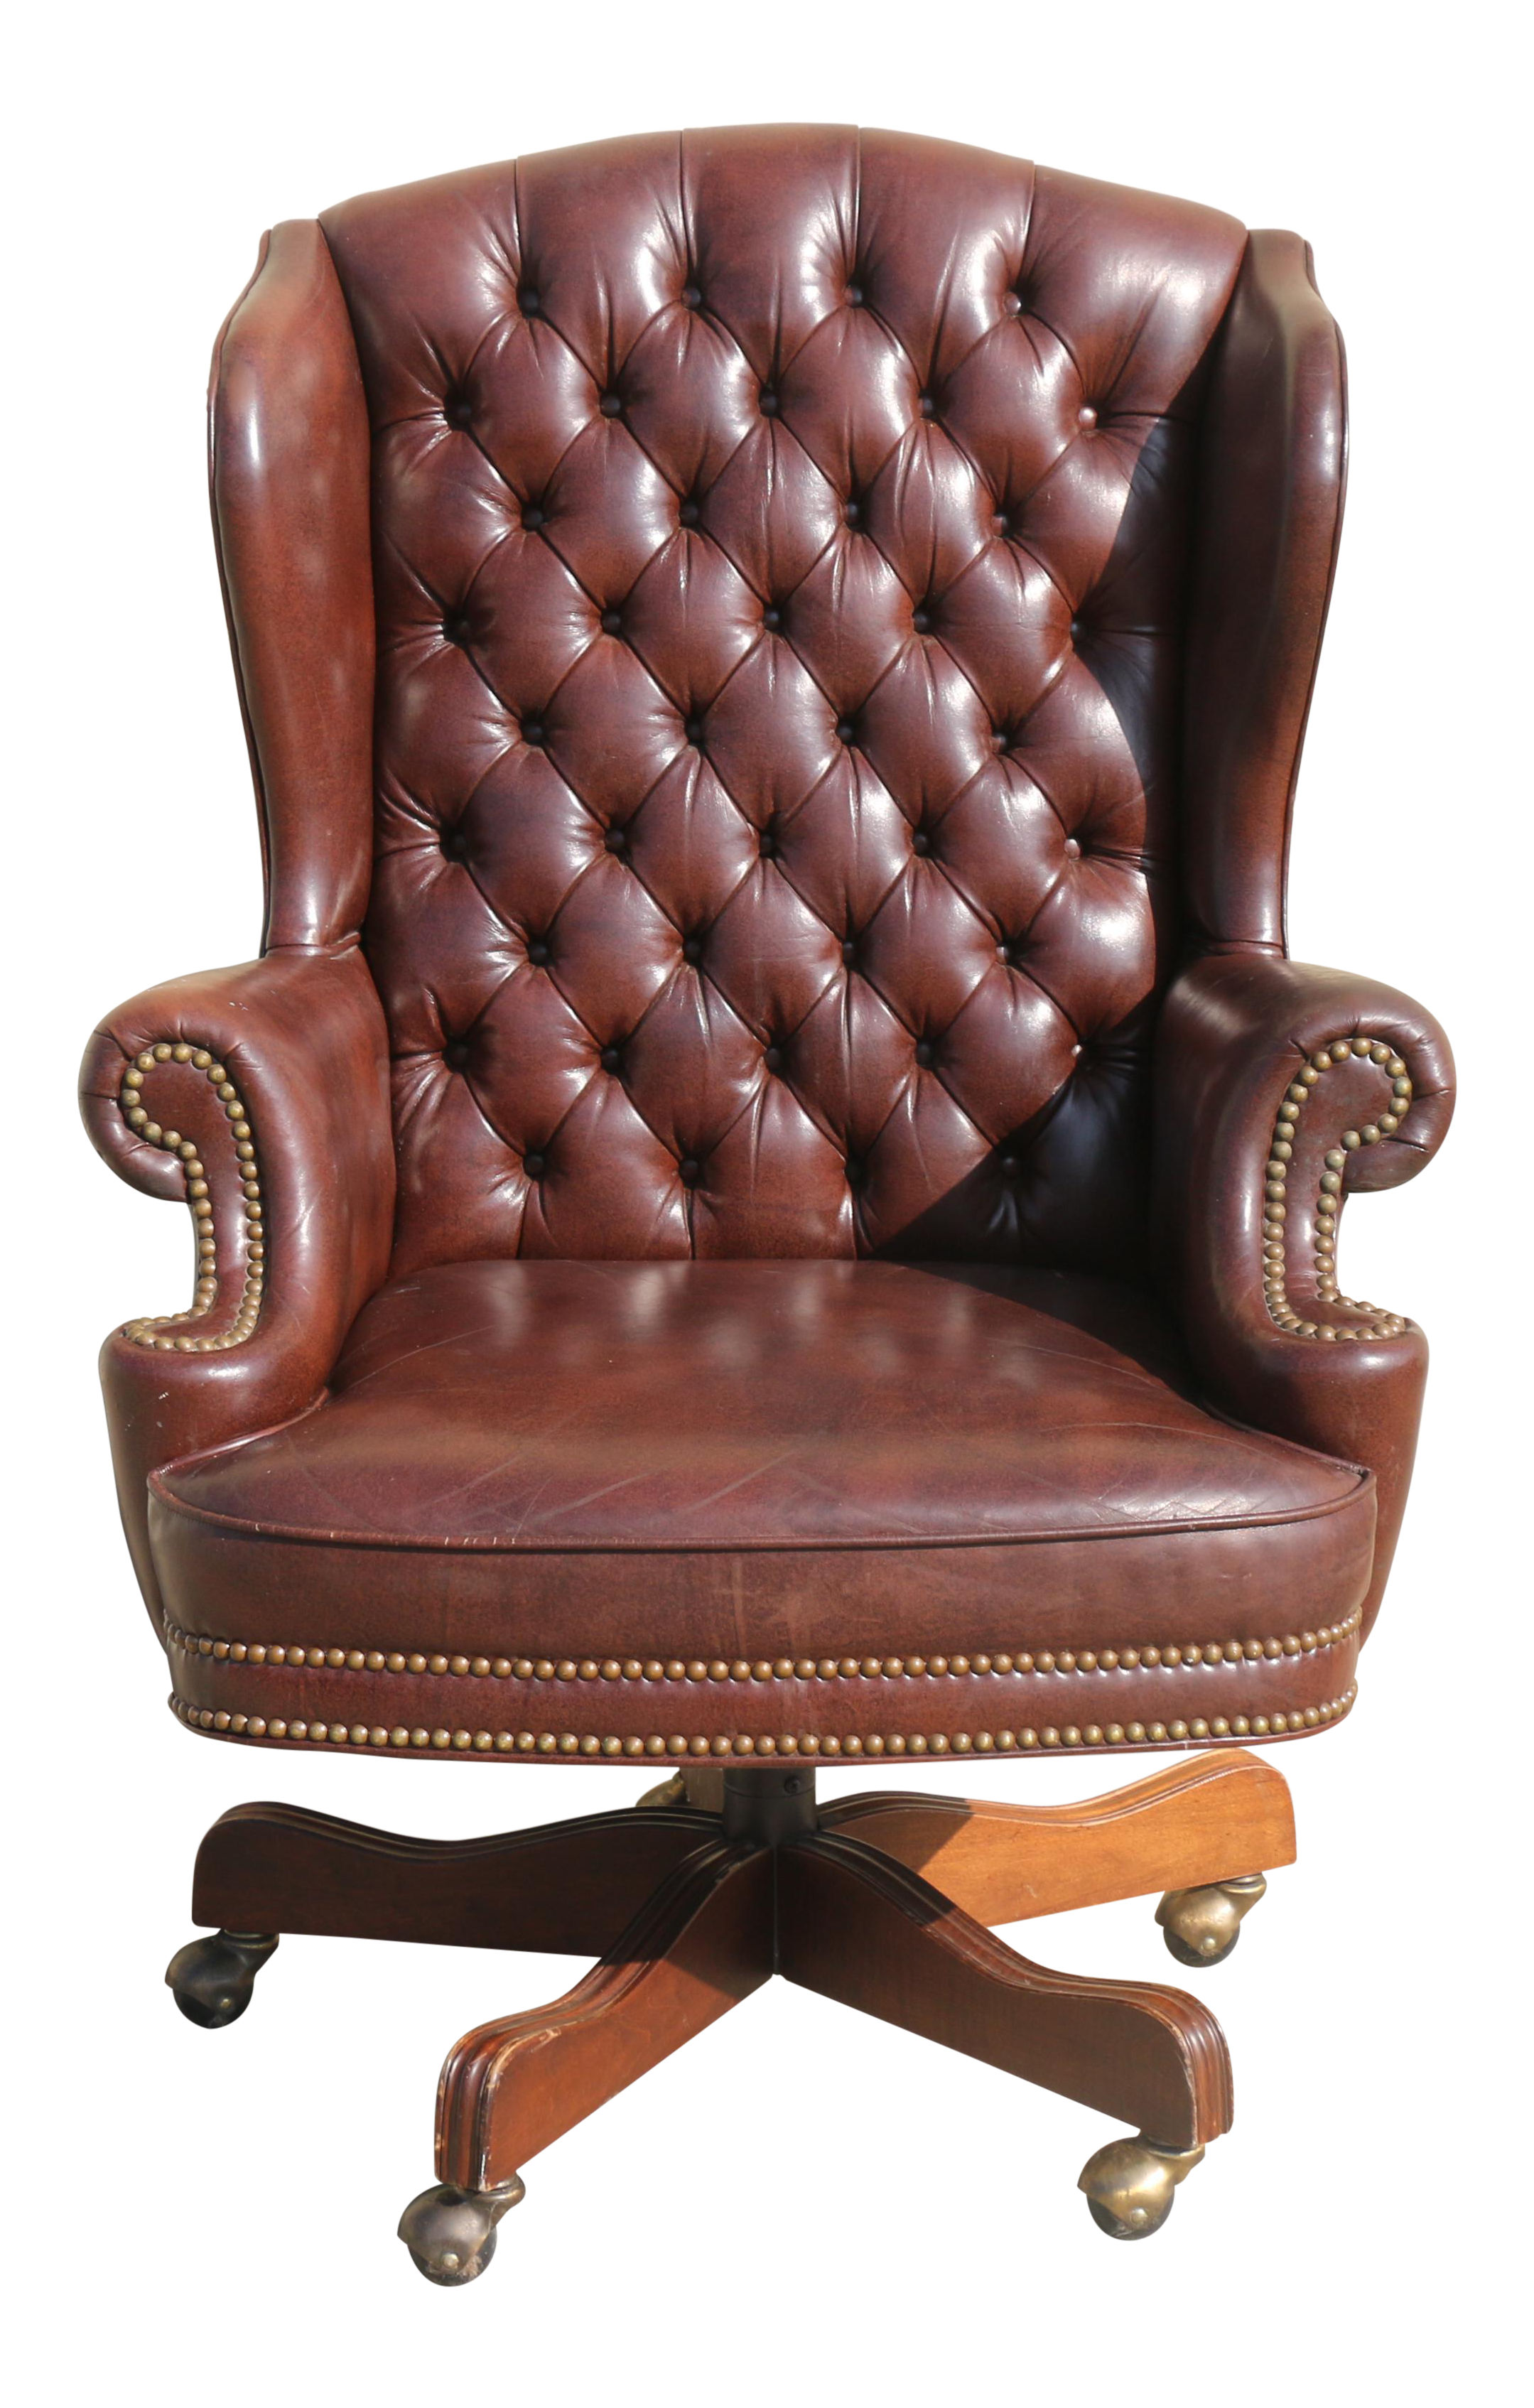 Vintage Office Leather Chair With Wheels Has No Rips Or Damages